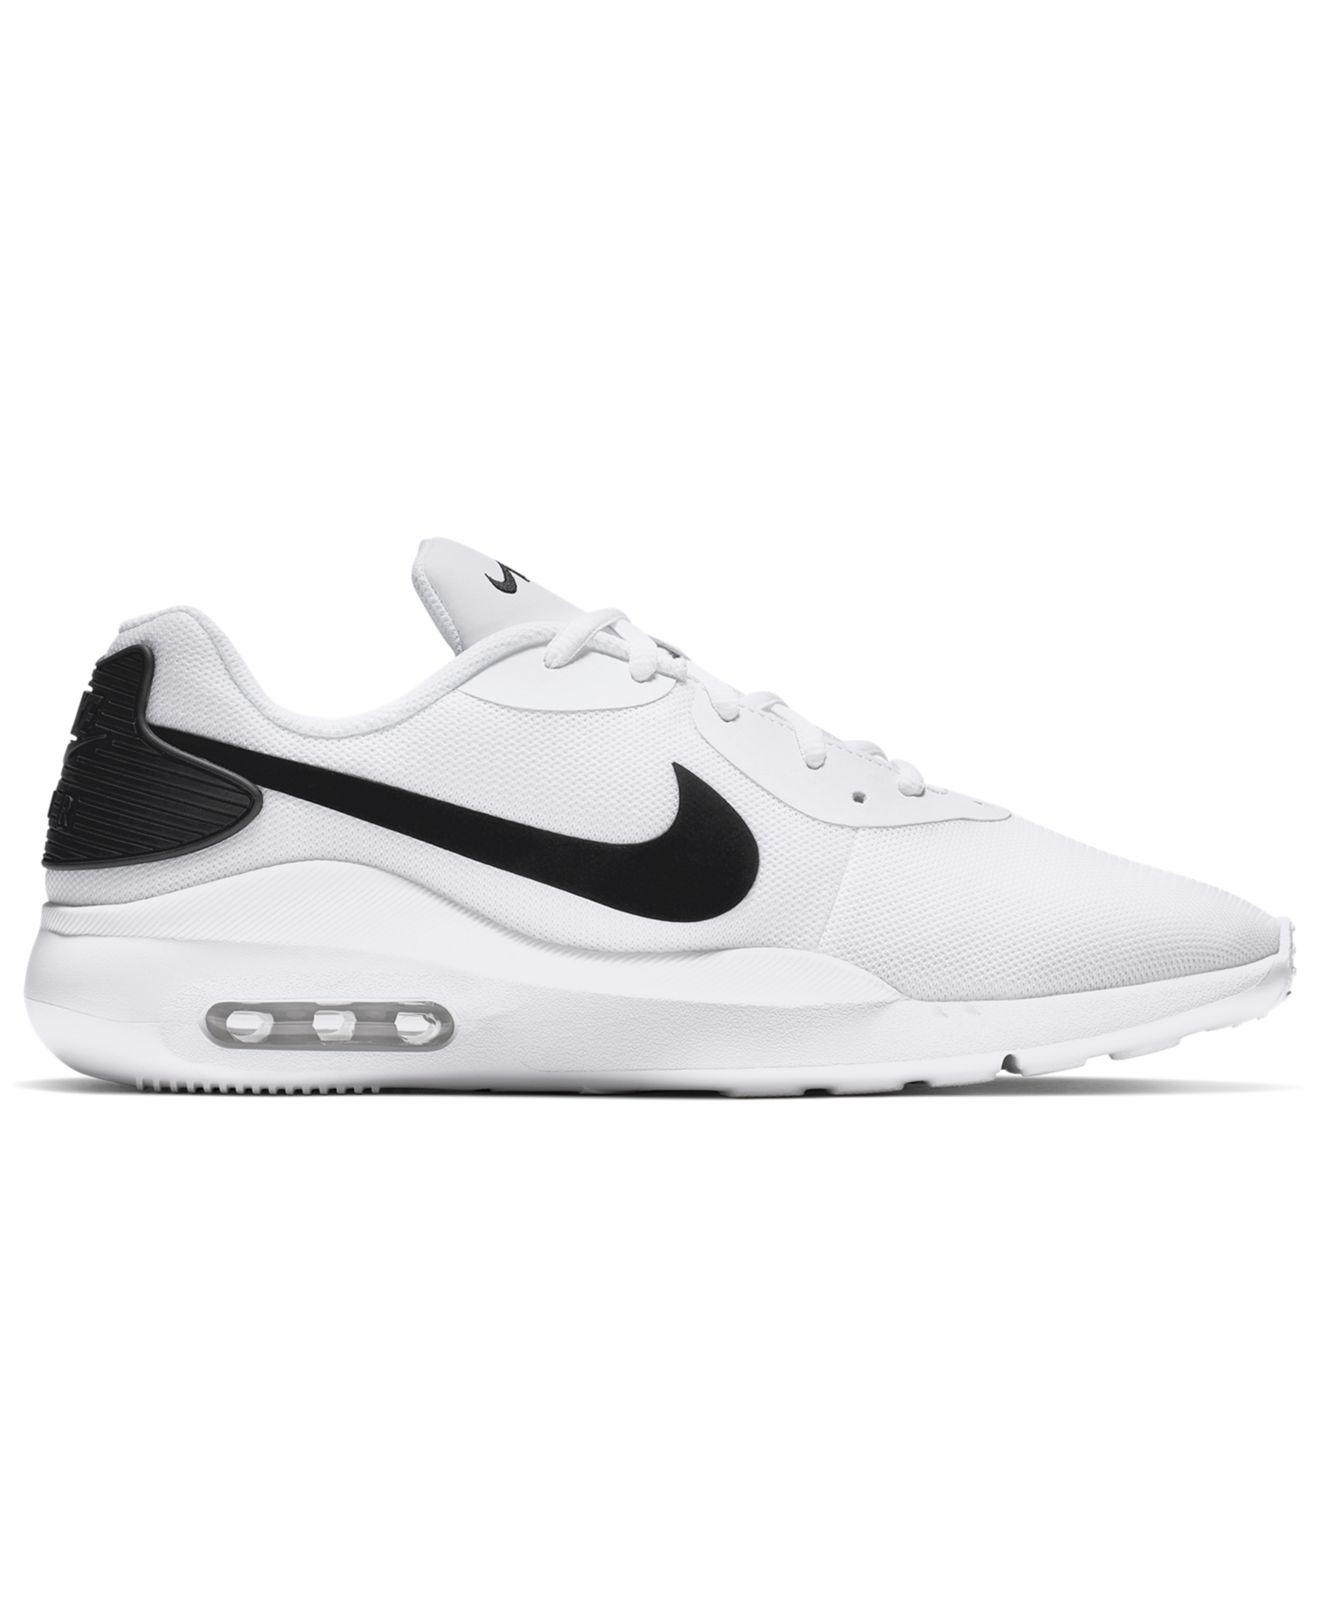 big sale 4c1c5 f2ea6 Nike Air Max Oketo Shoe in White for Men - Save 1% - Lyst